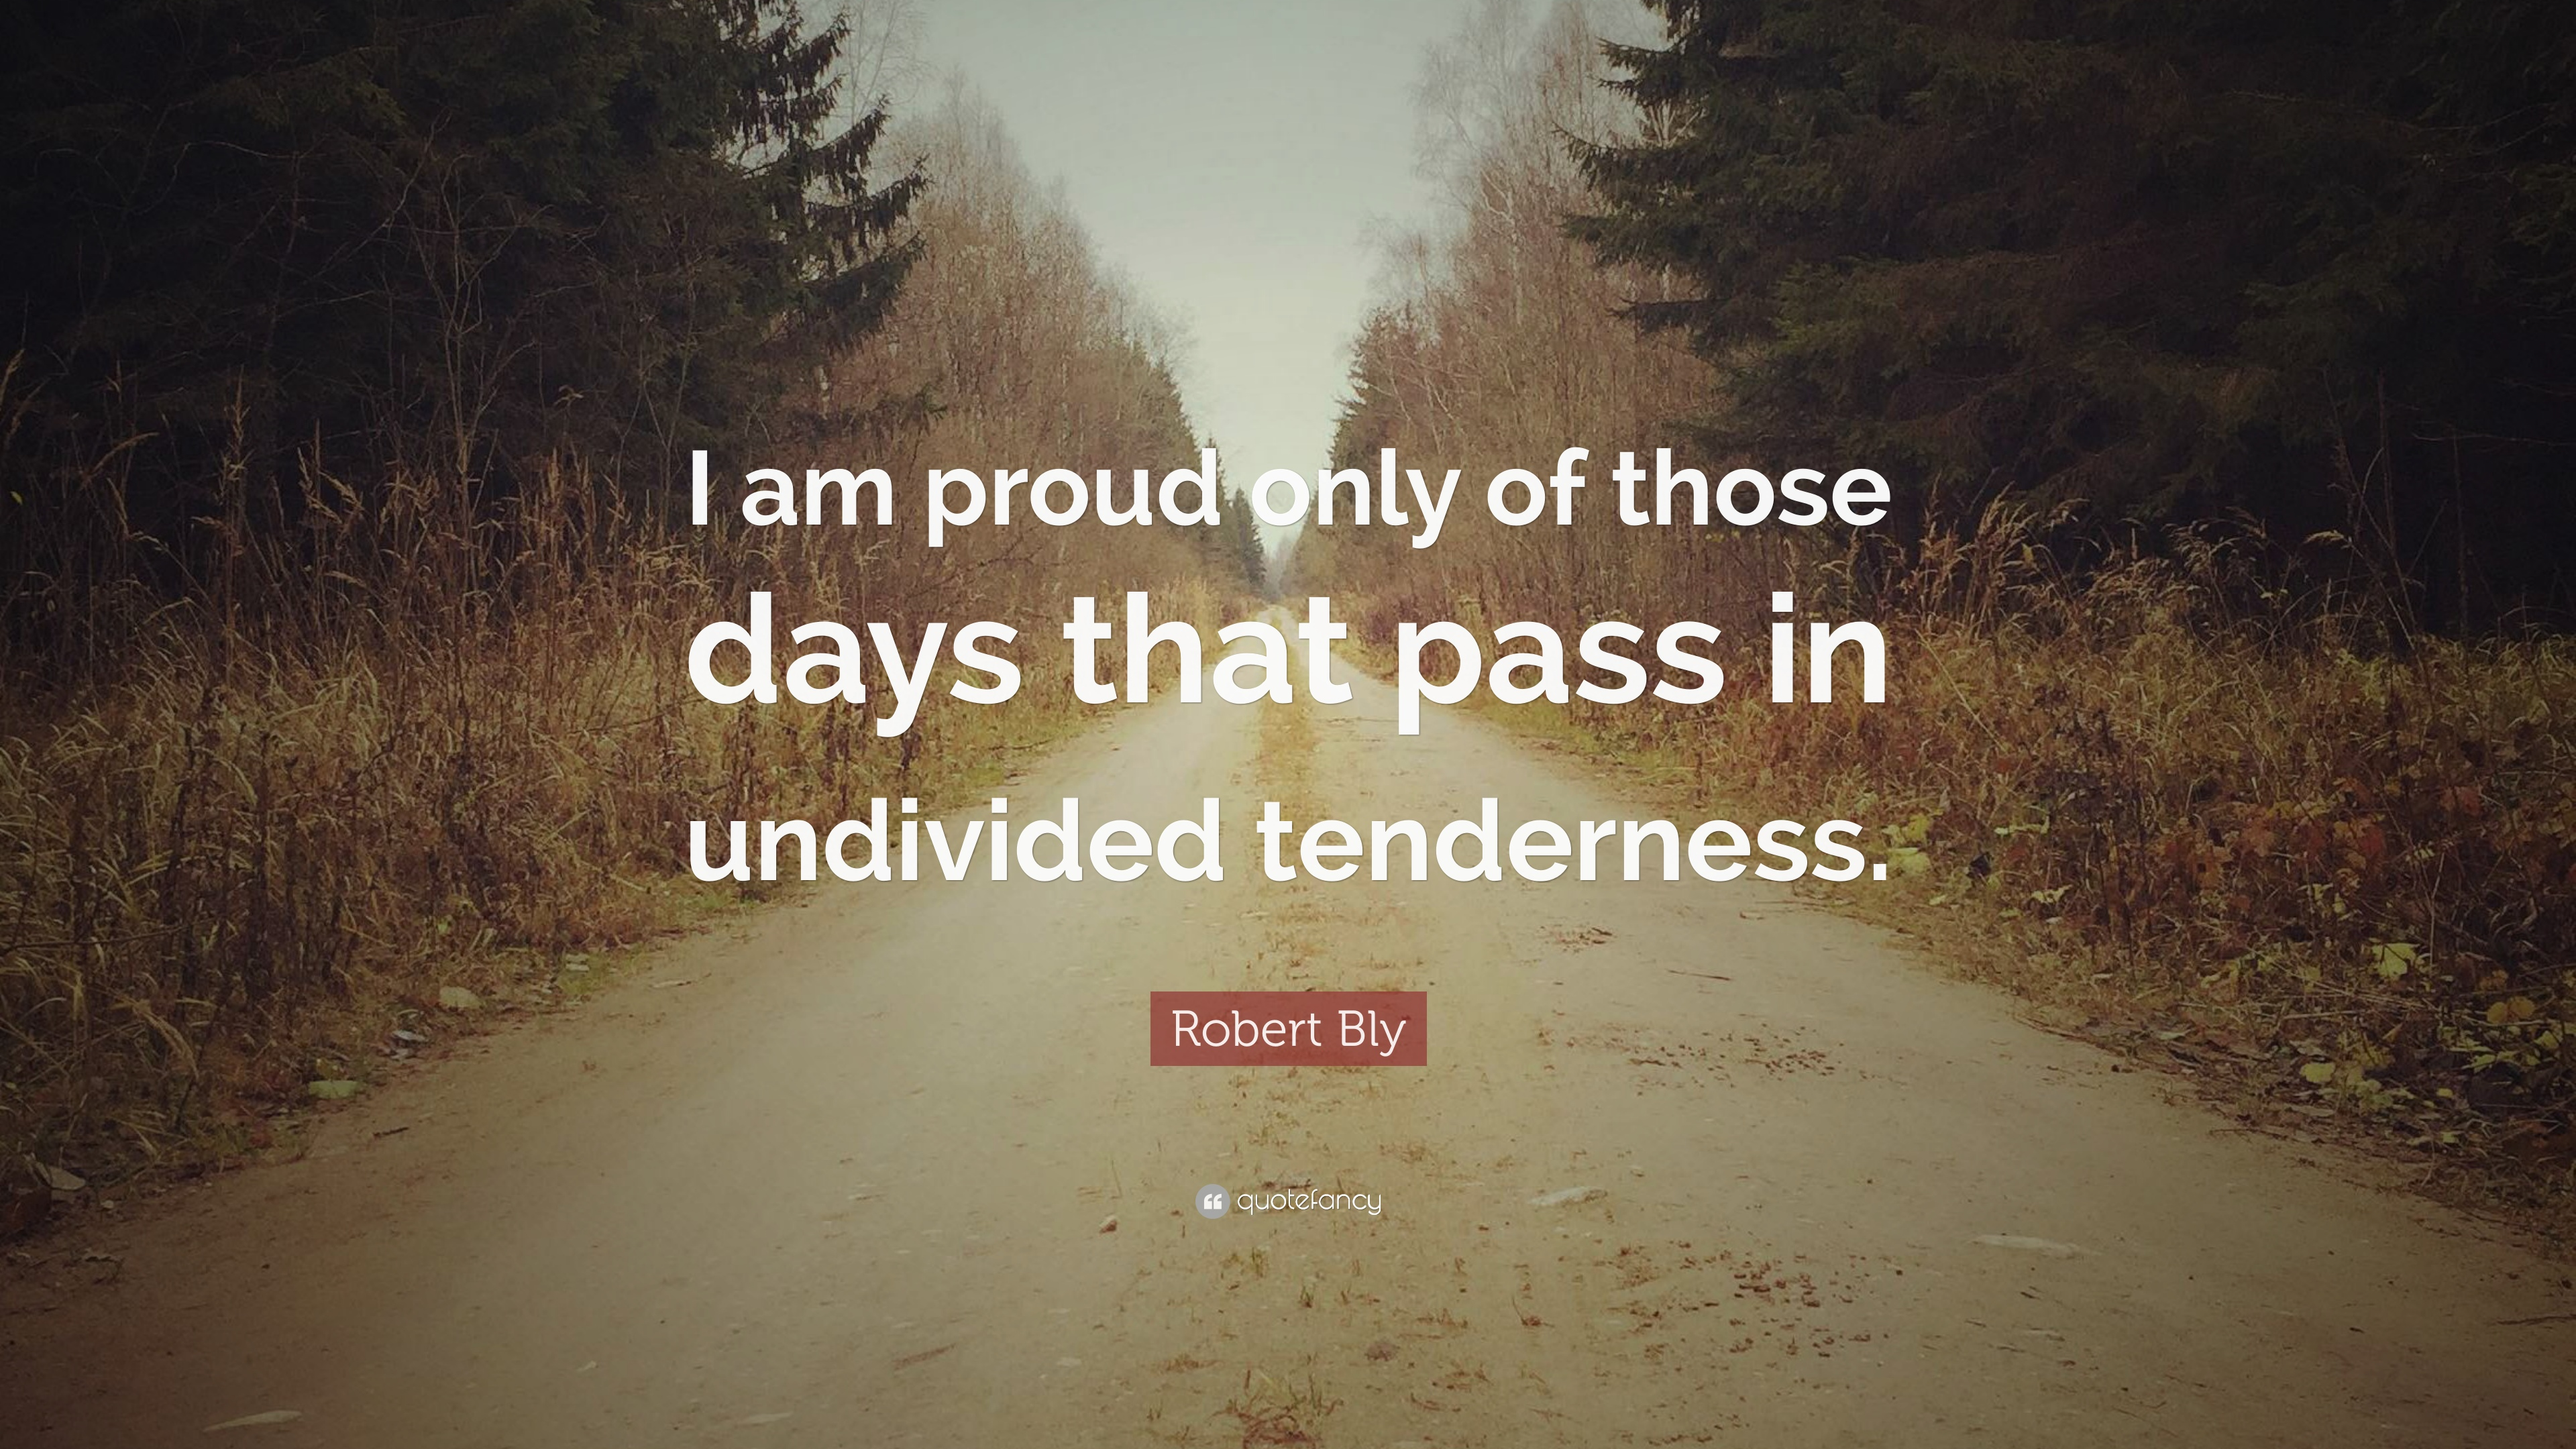 Robert Bly Quotes Pinterest